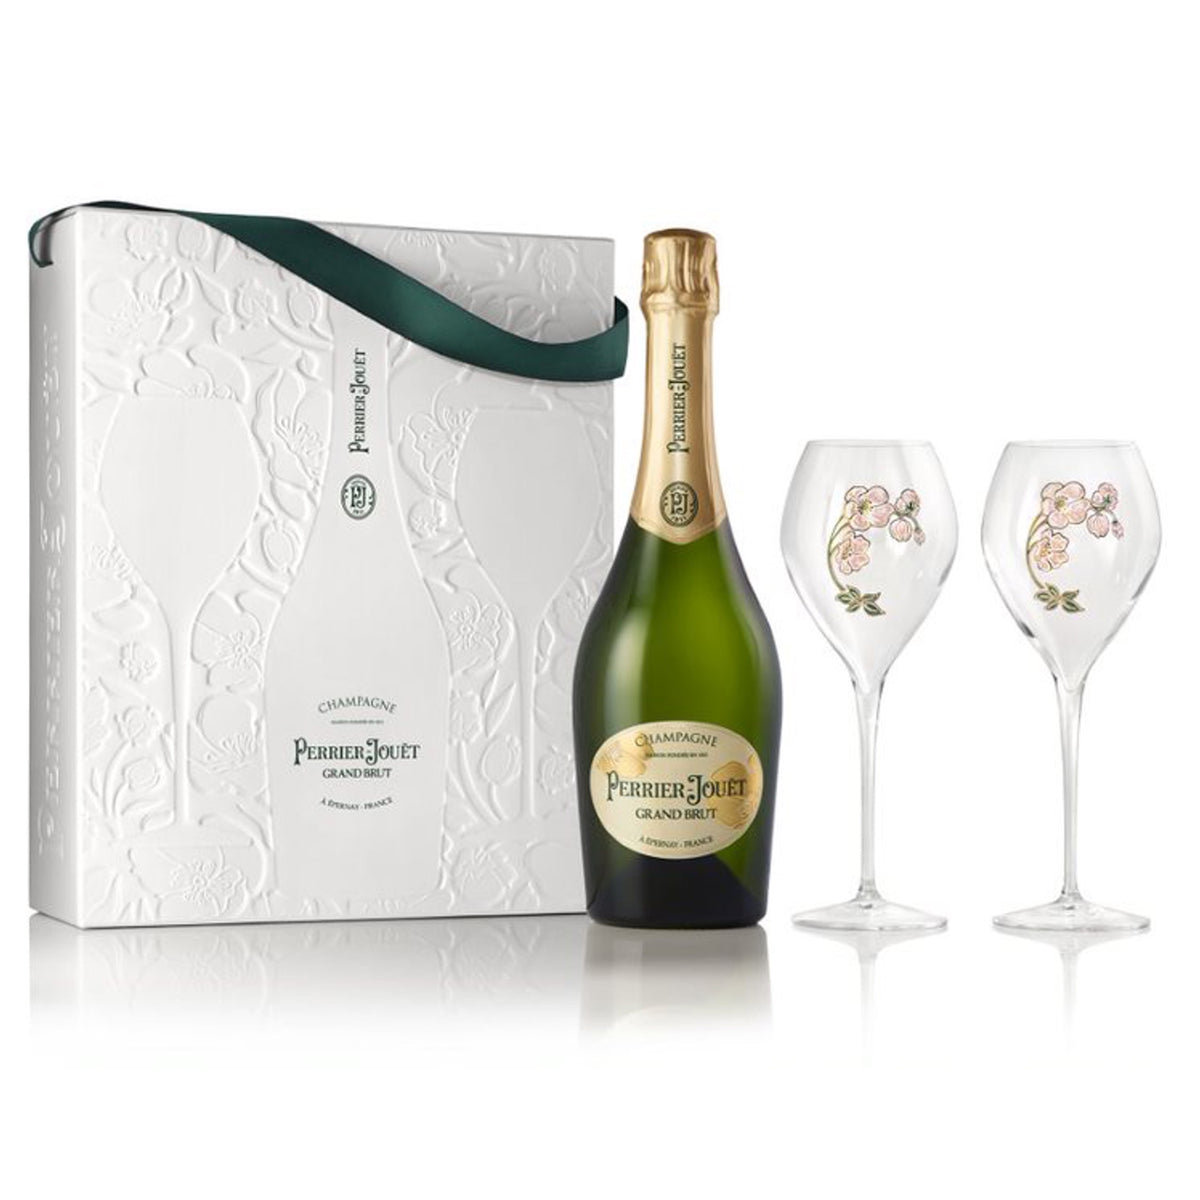 "PERRIER JOUET Champagne ""Grand Brut"" NV with 2 glasses in Ecobox Gift Set"